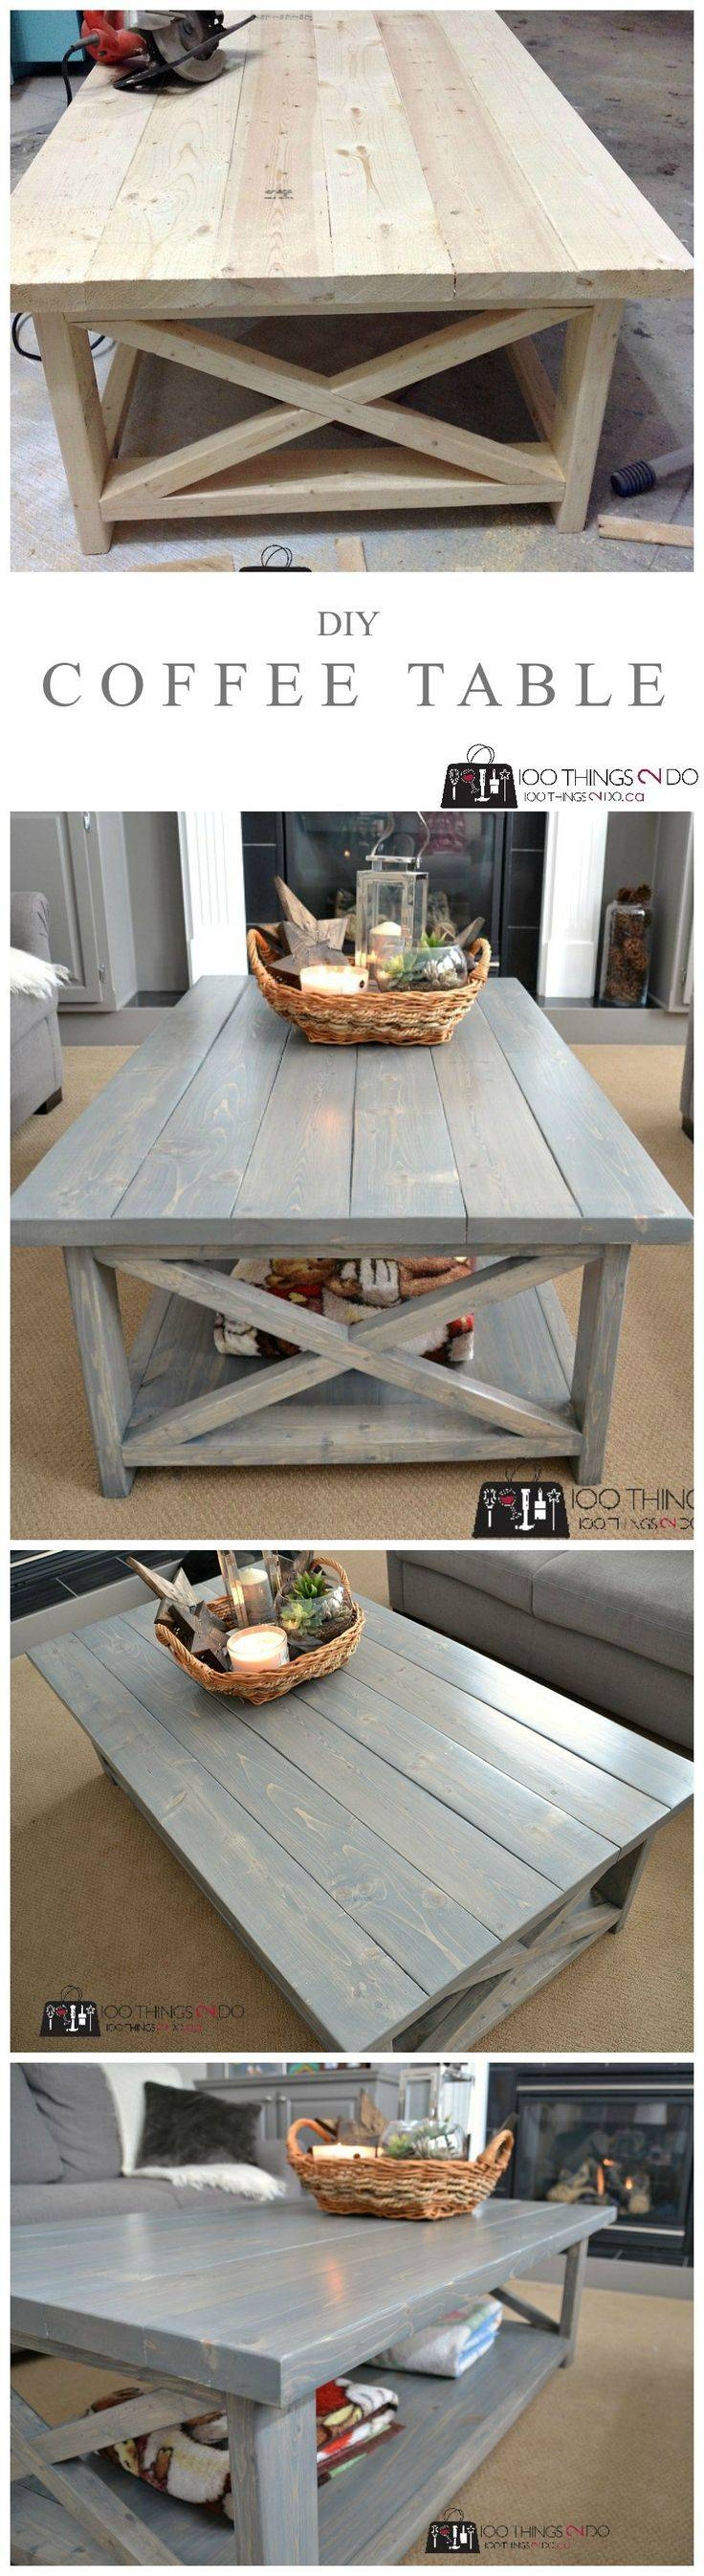 Best 25+ Grey Stained Wood Table Ideas On Pinterest | Grey House regarding Gray Wash Coffee Tables (Image 4 of 30)